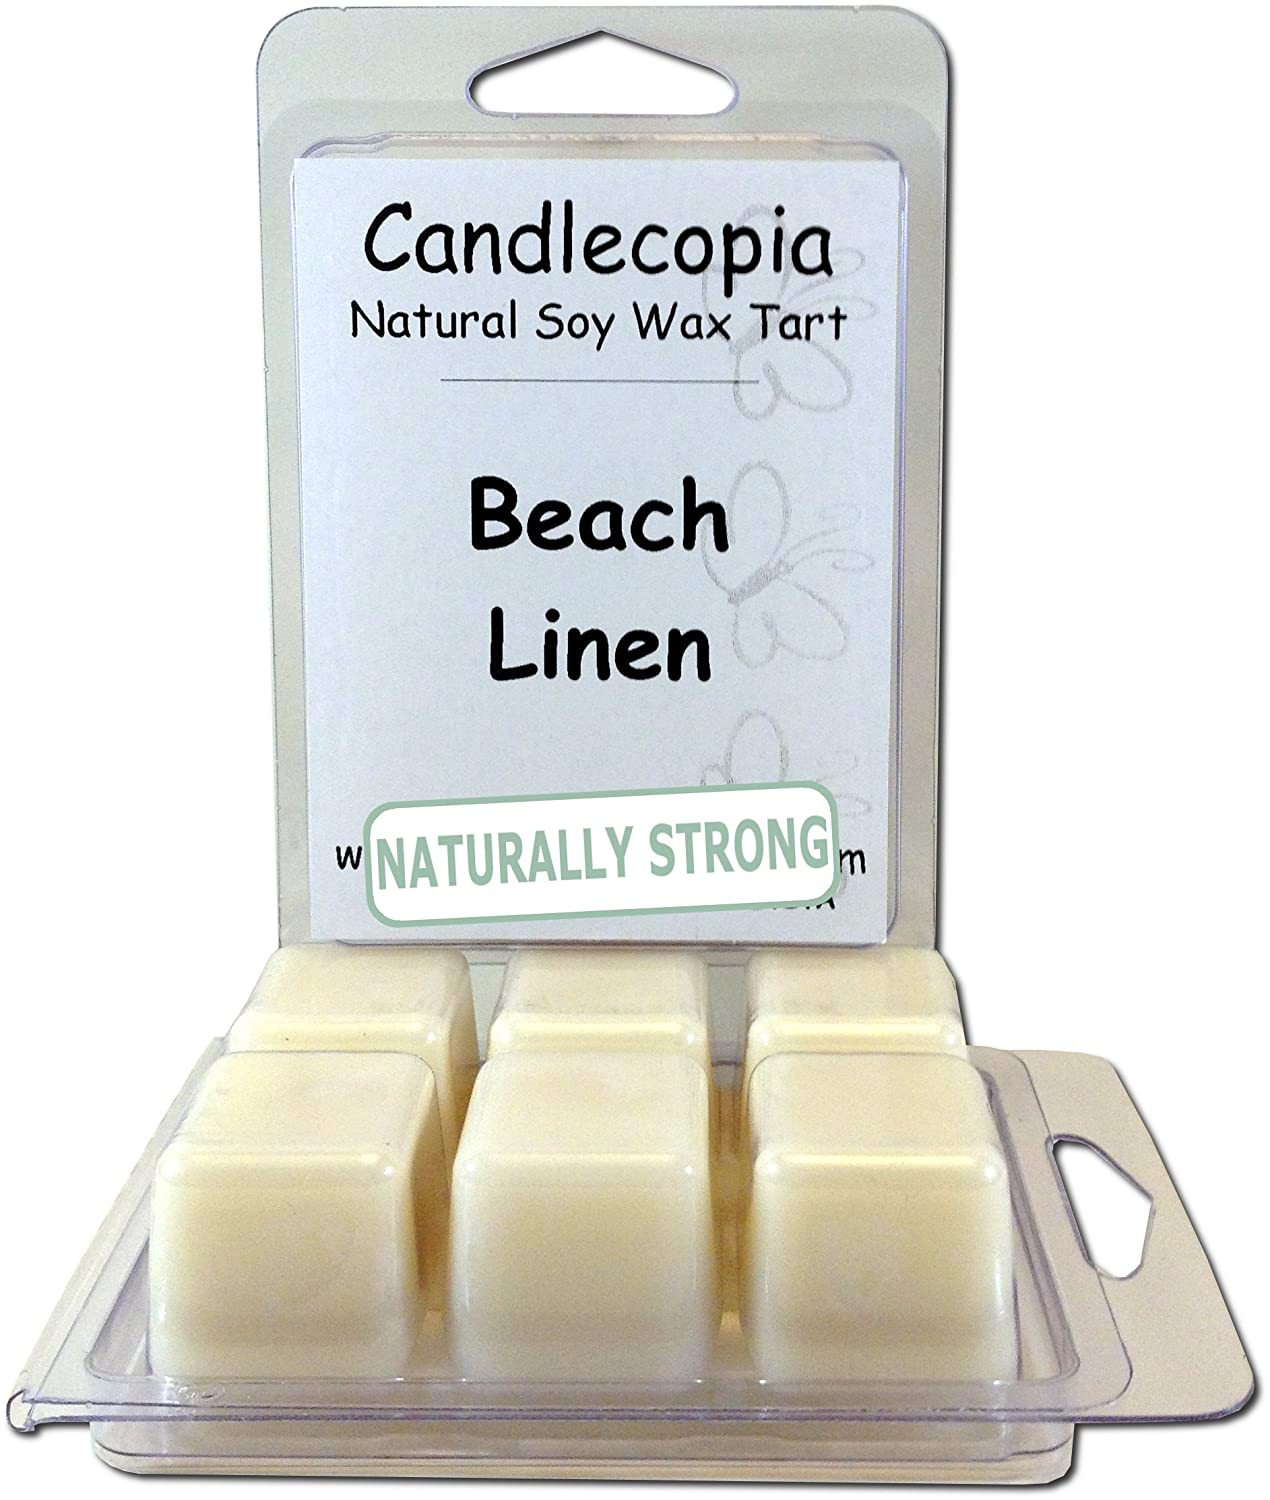 Candlecopia Baby Powder 6.4 oz Scented Wax Melts - This classic powdery, floral fragrance evokes memories of a sweeter, simpler time - 2-Pack of naturally strong scented soy wax cubes throw 50+ hours of fragrance when melted in Scentsy®, Yankee Candle® or